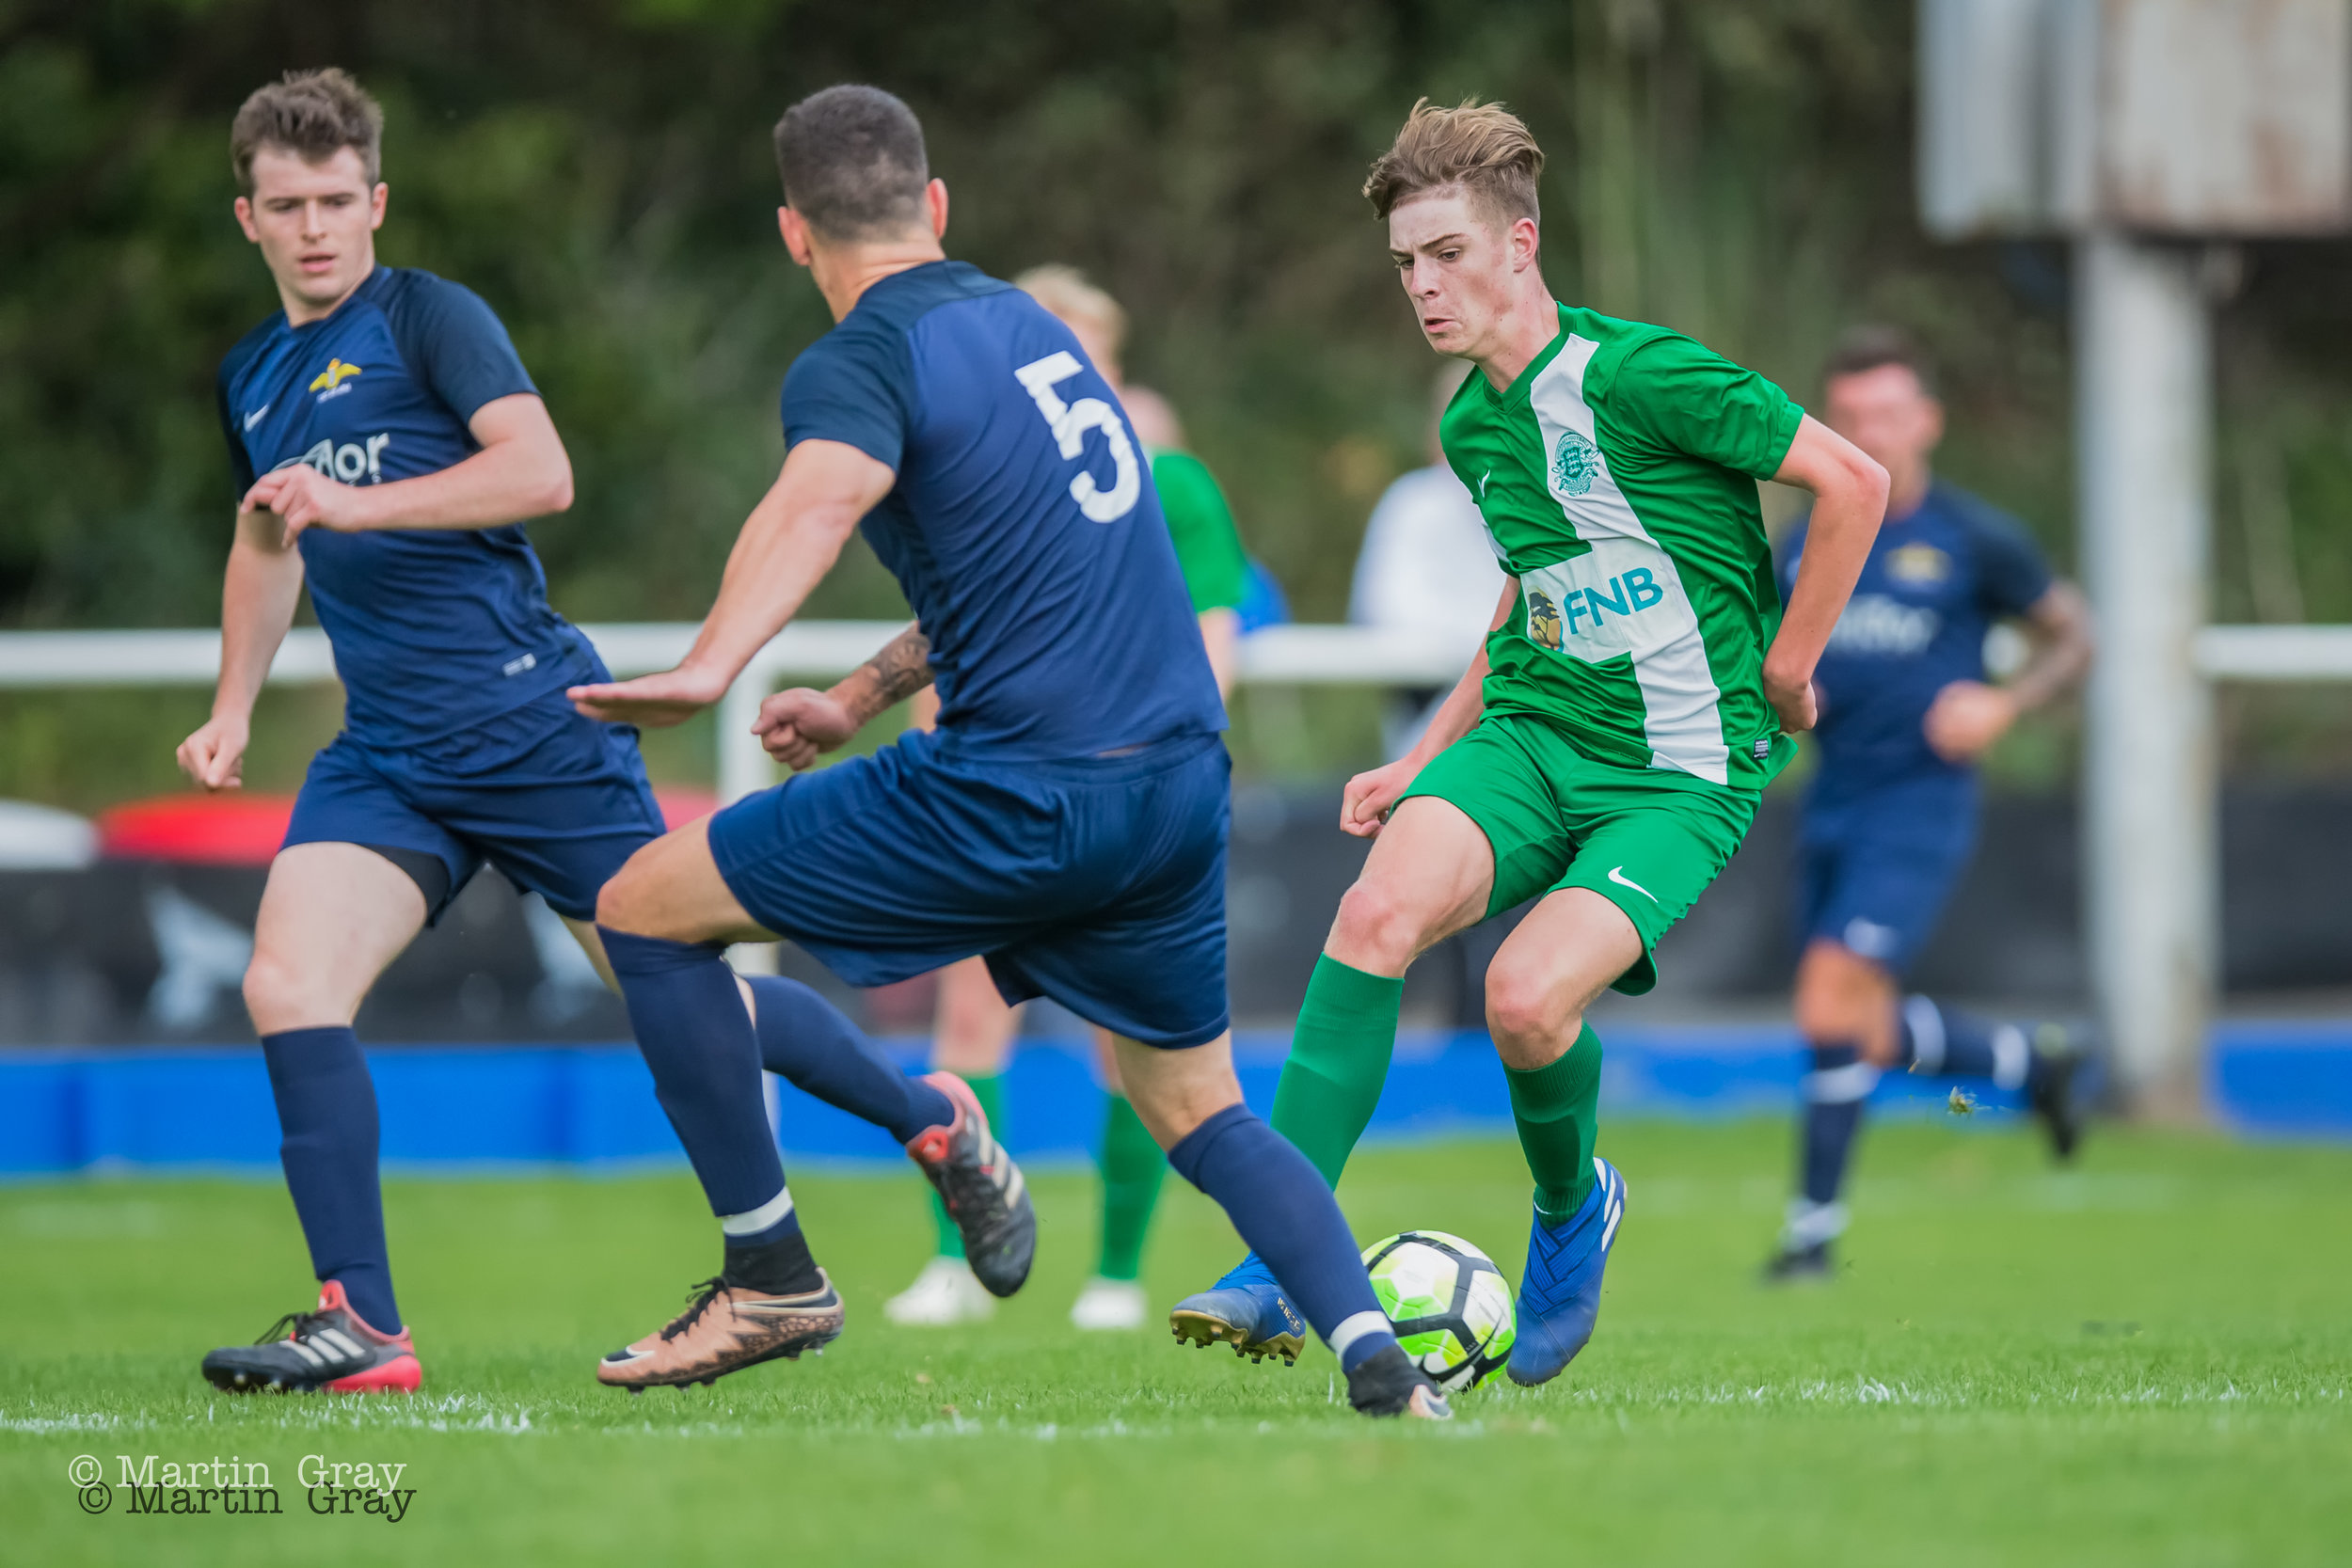 Guernsey FA U21's v Royal Navy Air Command at The Track in the Malaya Cup 2019… Guernsey win 6-2